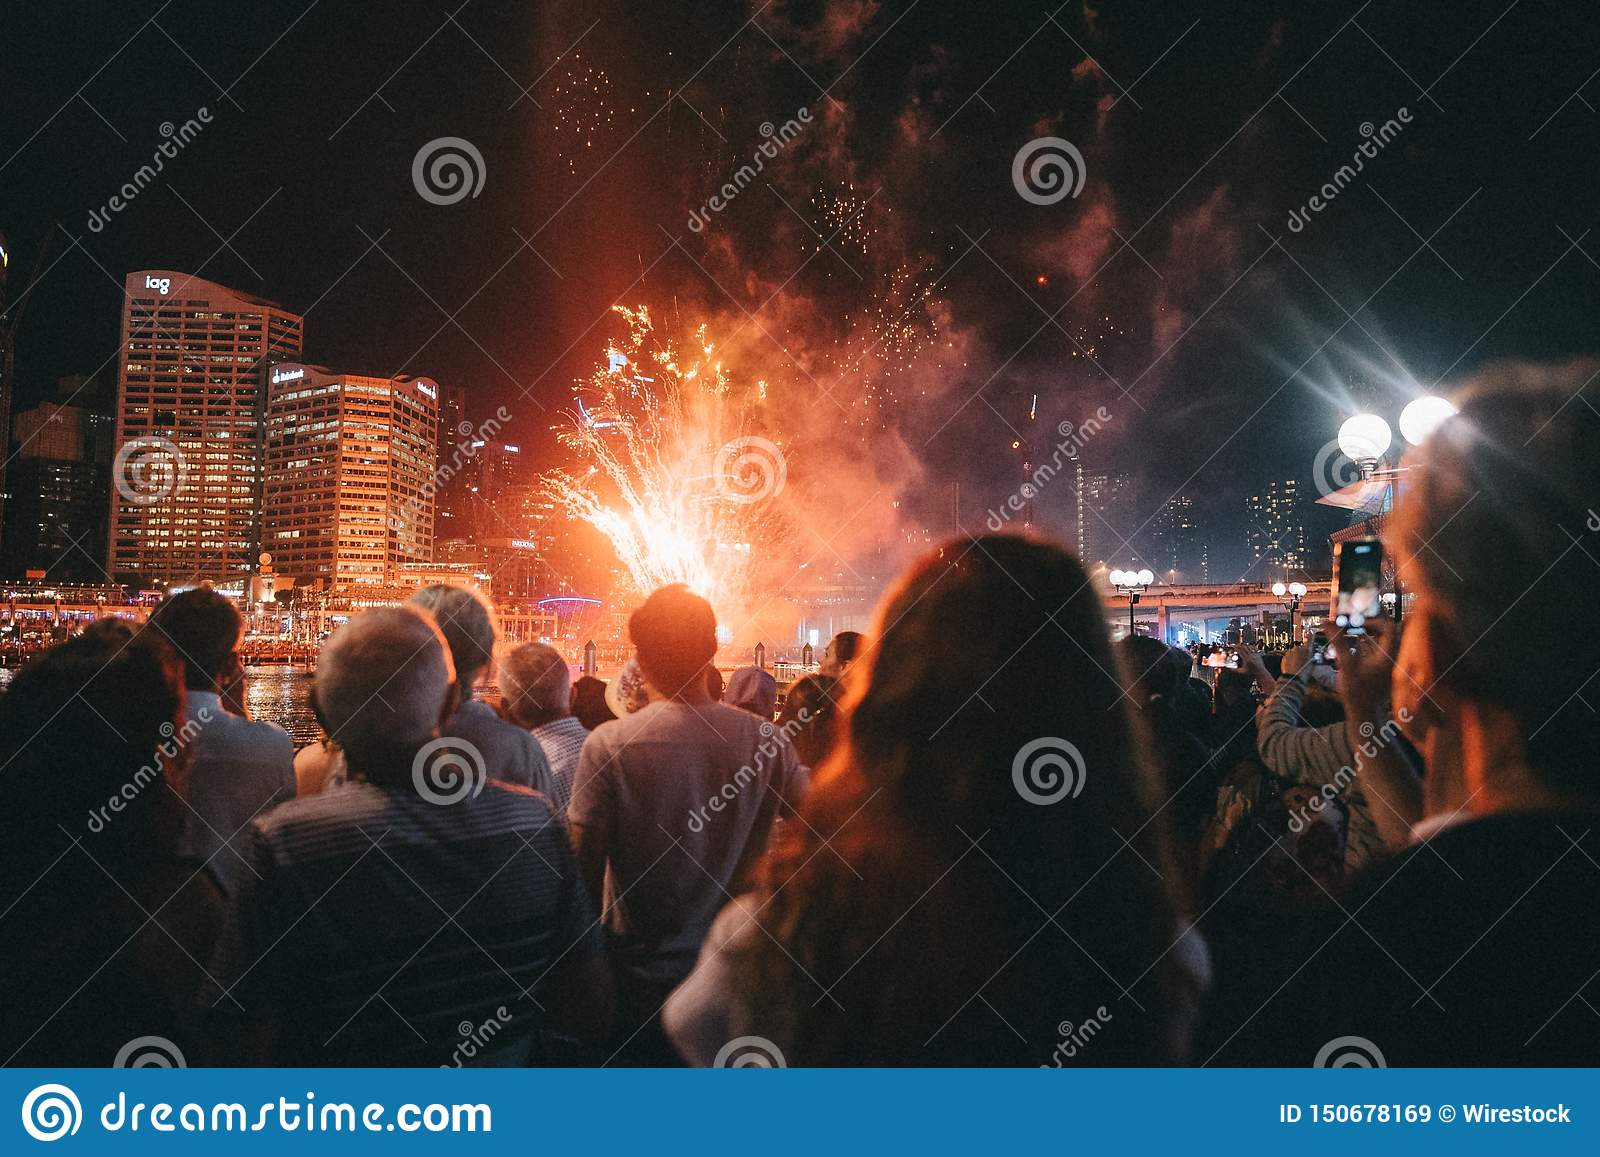 Group of people gathered around at a festival enjoying bright fireworks